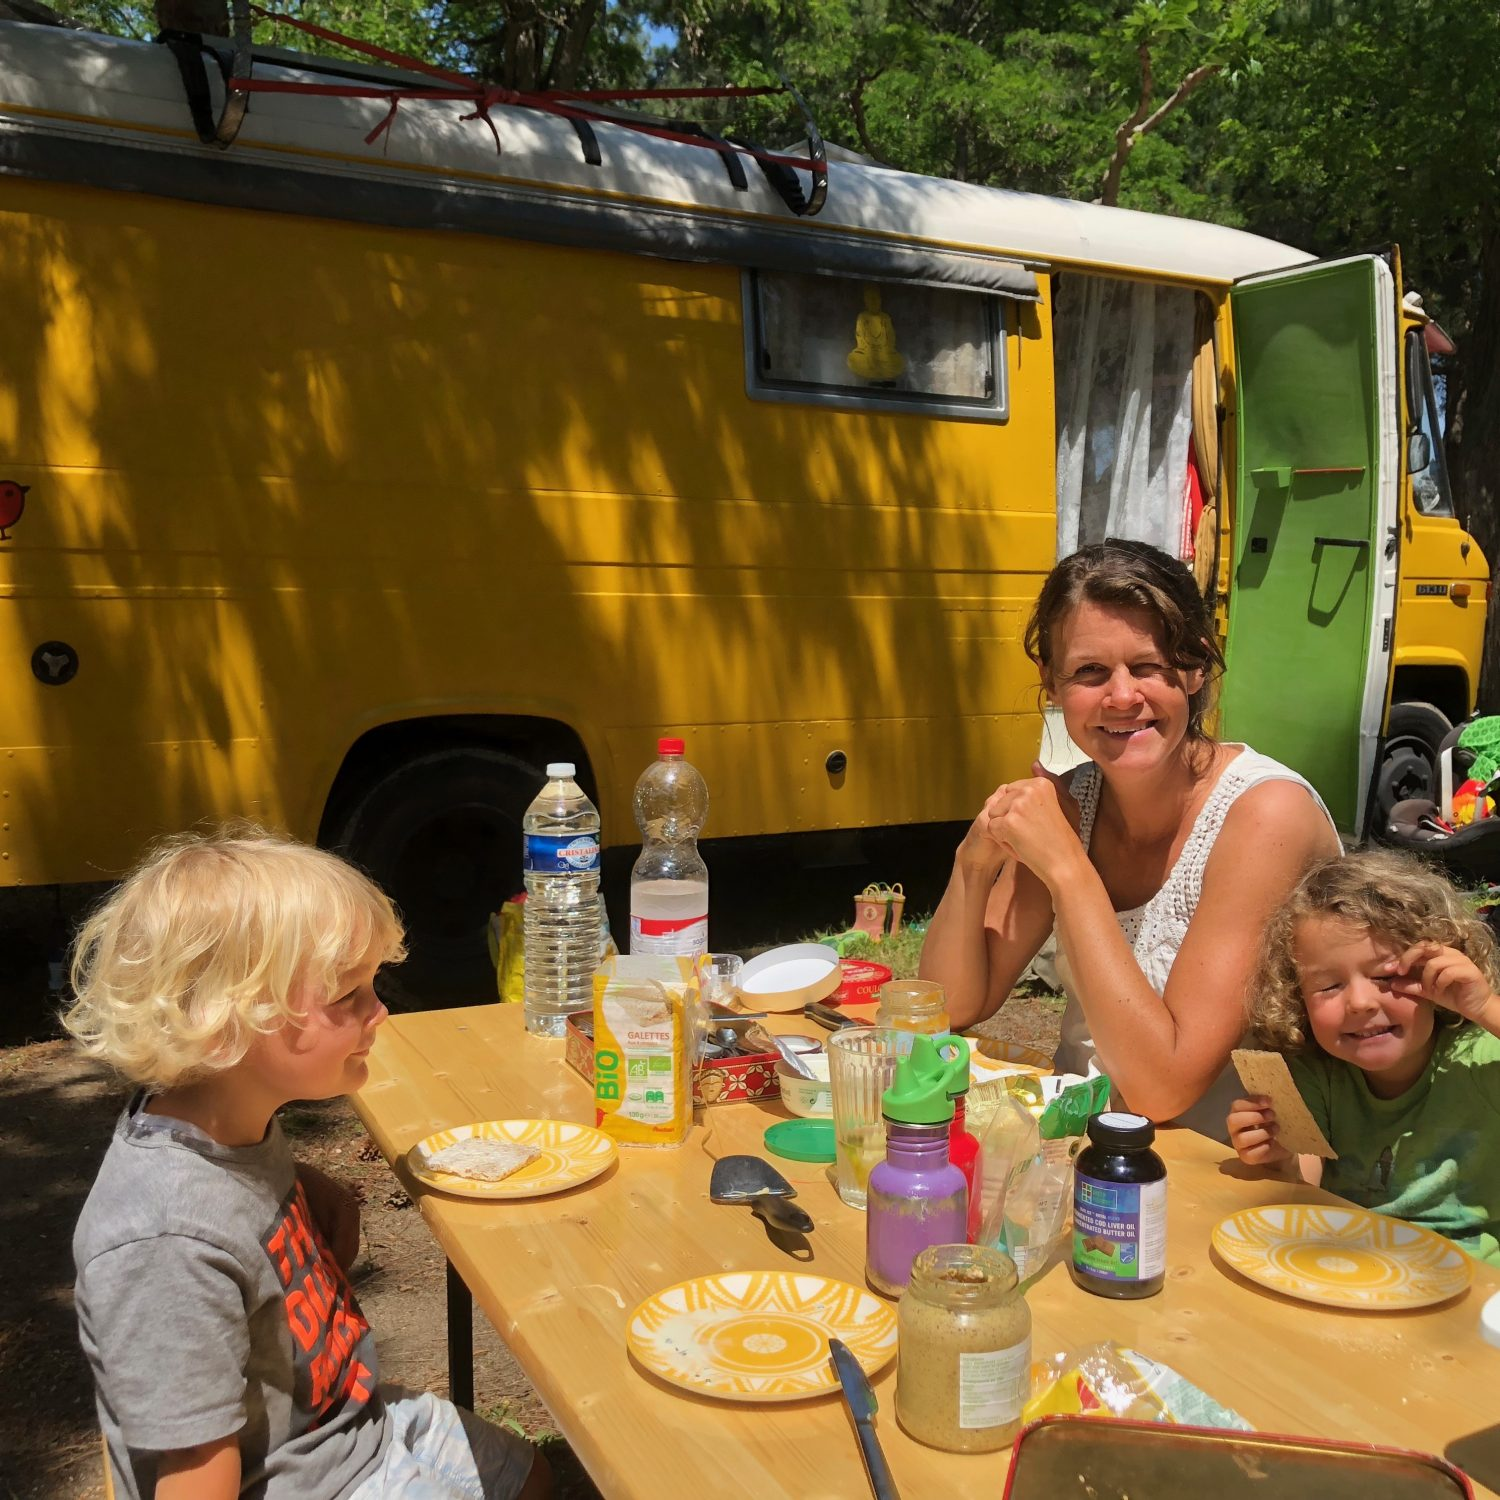 Expedition Family Happiness - Lunch at the campsite